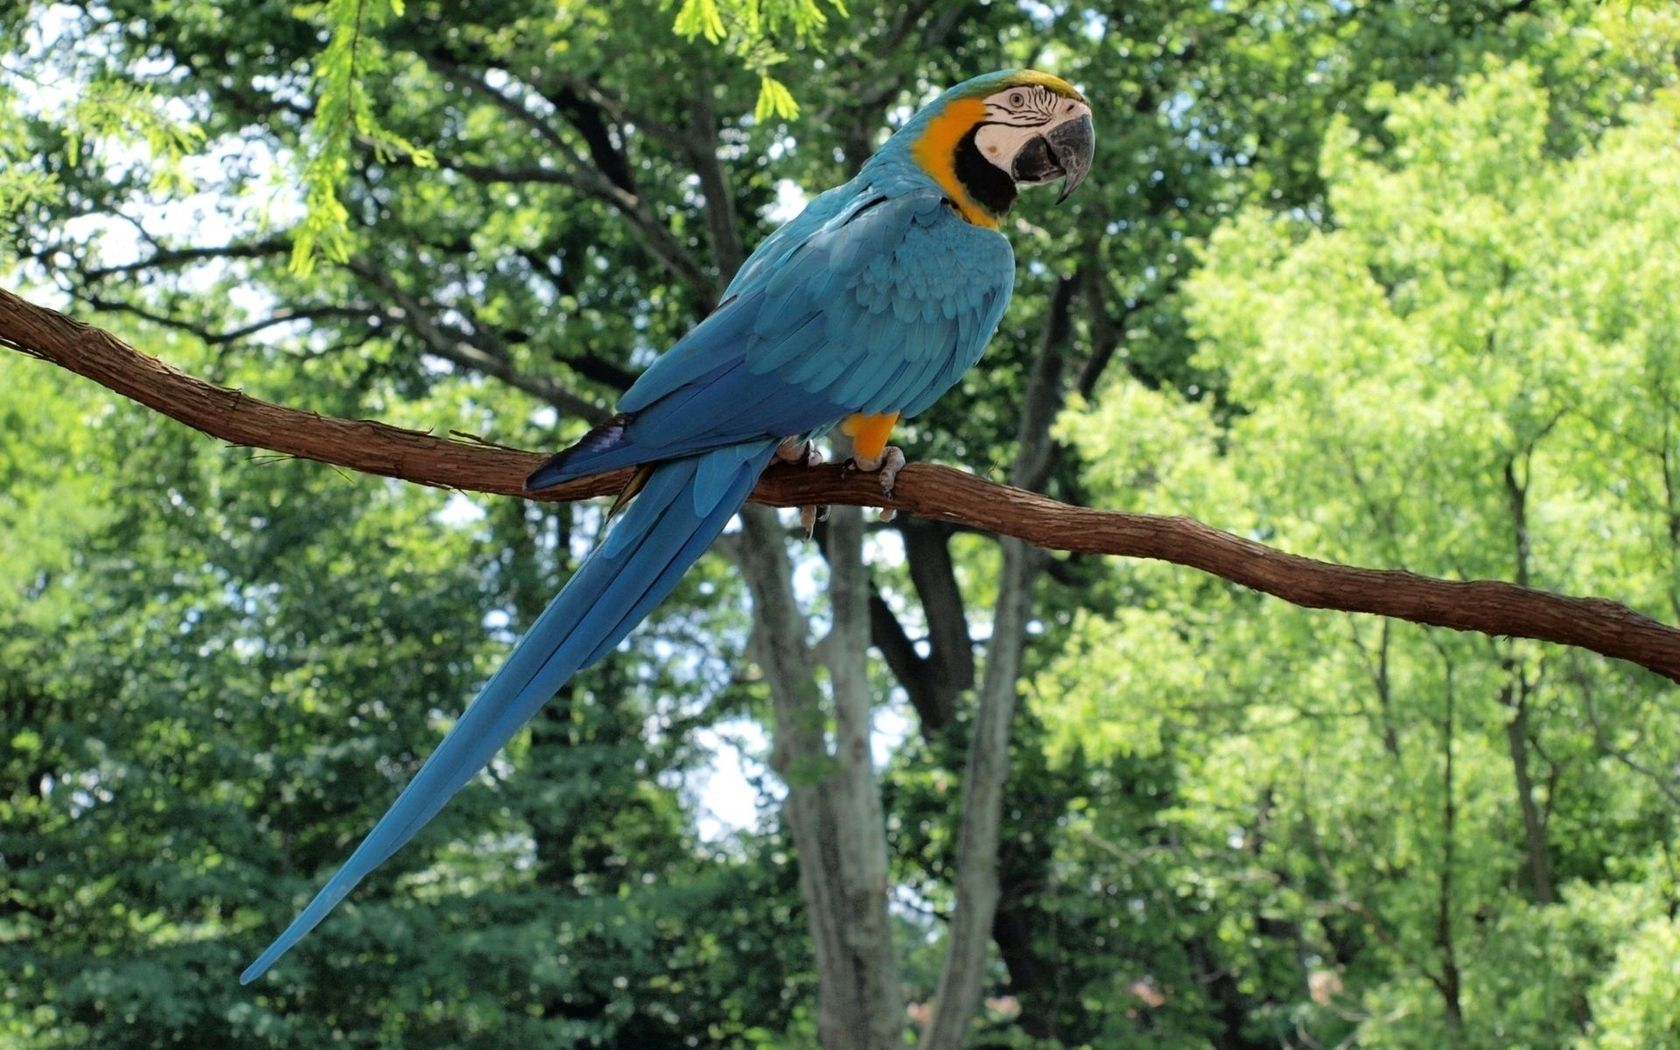 145645 download wallpaper Animals, Parrots, Macaw, Bird, Branch, Tail, Sit, Color, Forest screensavers and pictures for free